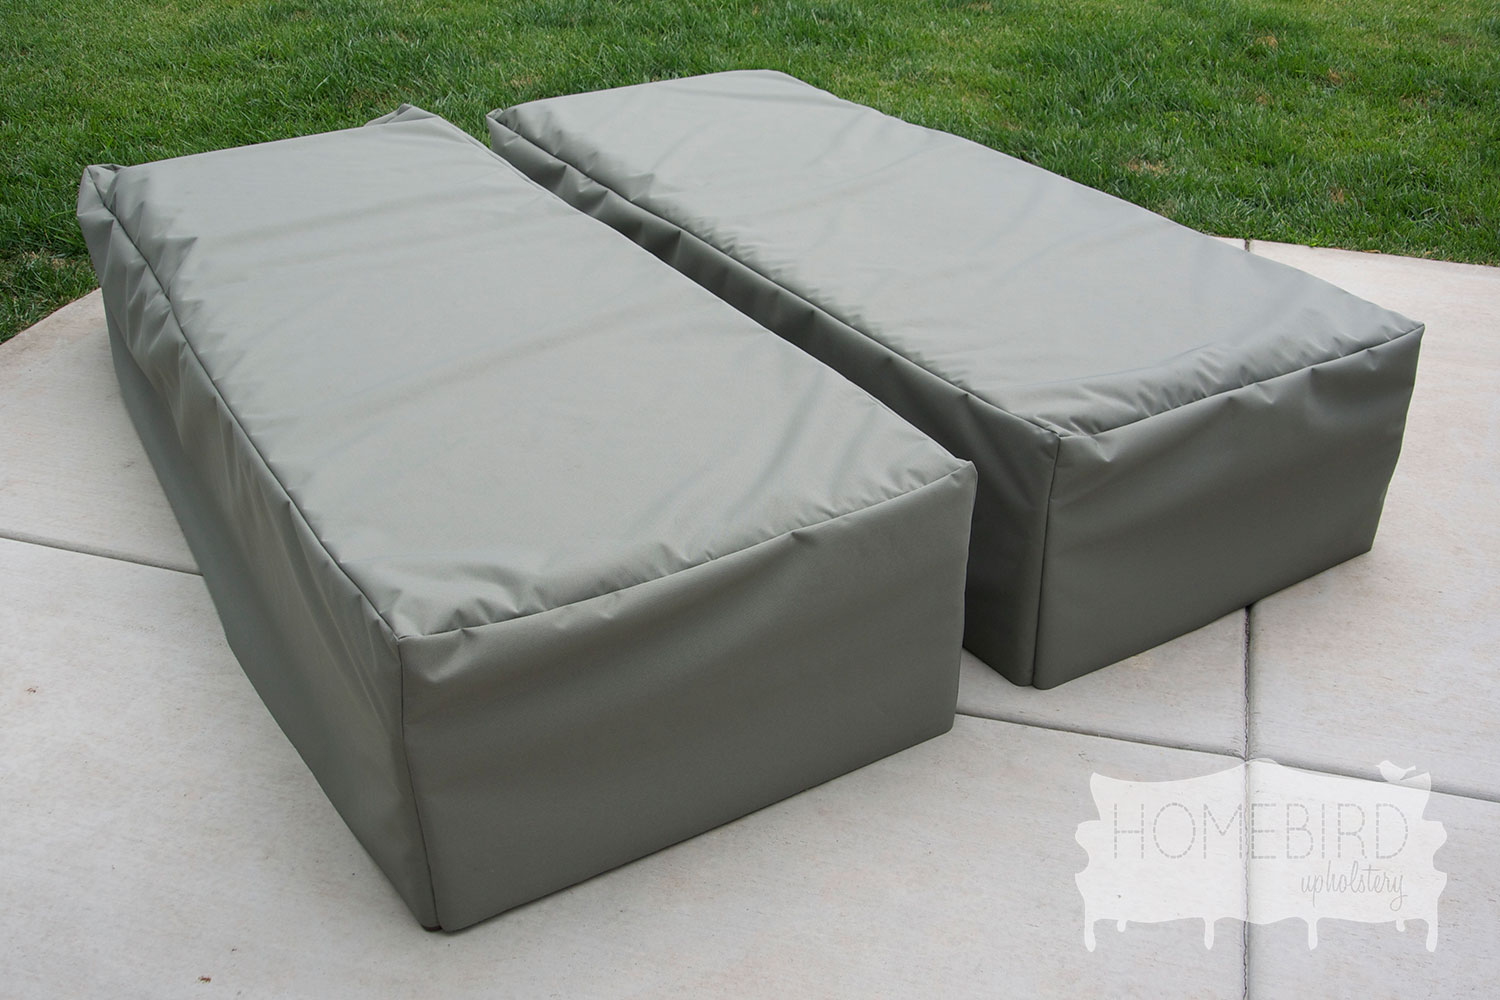 Custom order patio furniture covers lucky little for Furniture covers